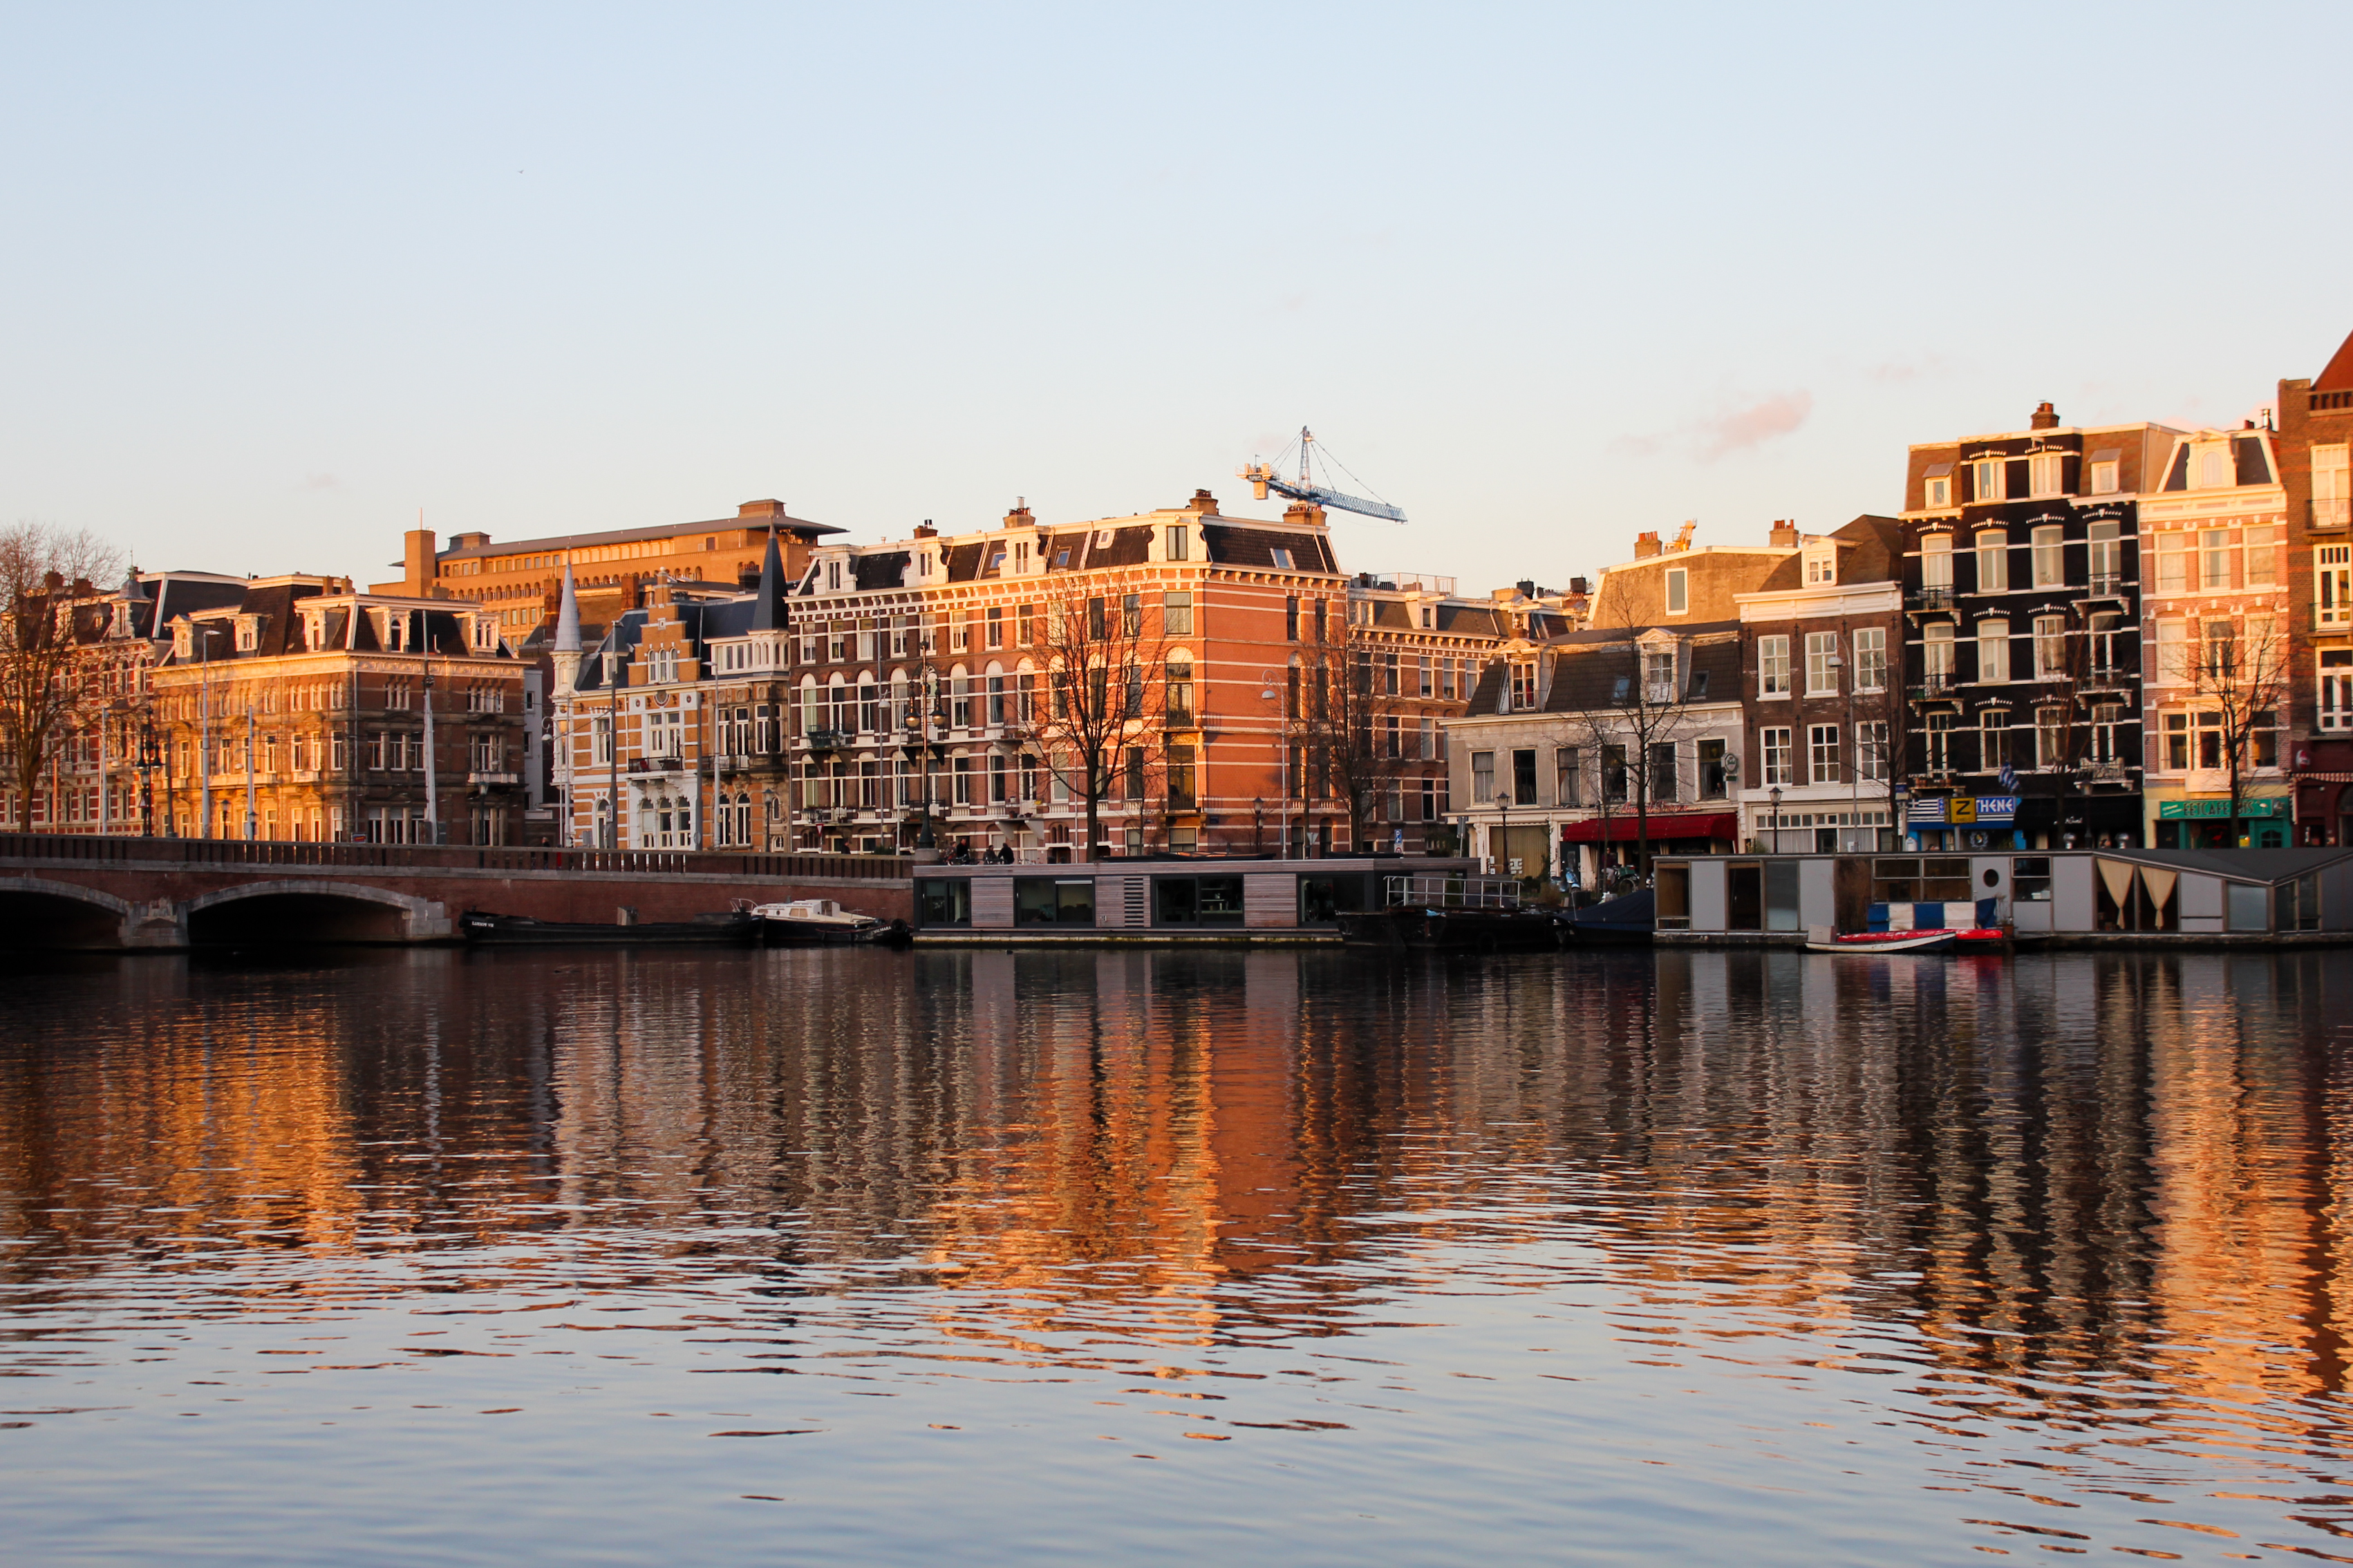 Live from Amsterdam!